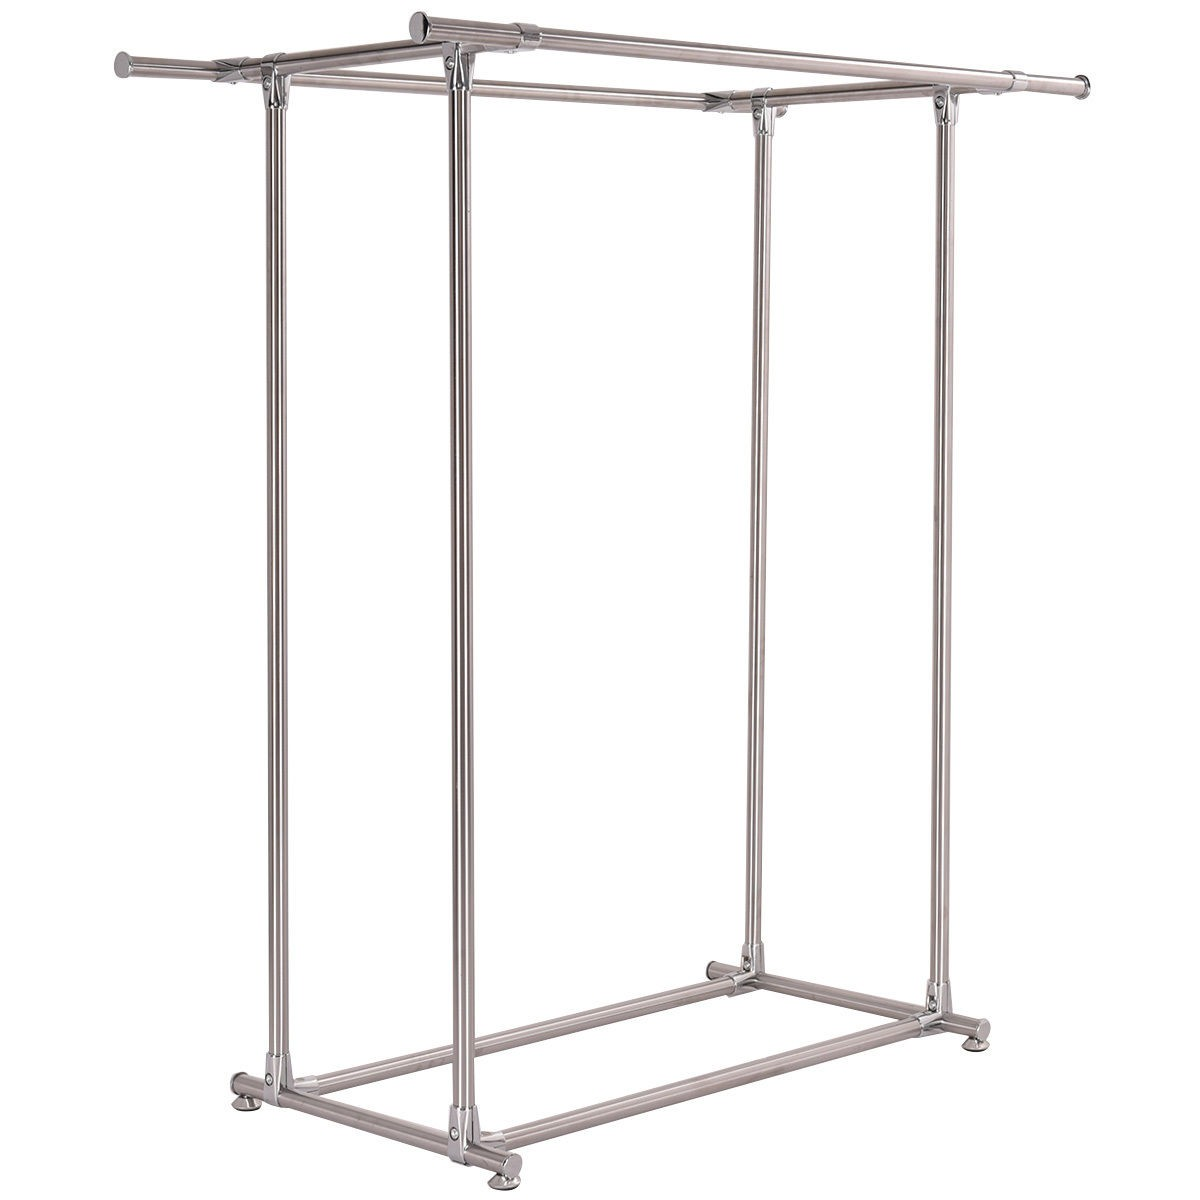 heavy duty stainless steel double rail garment rack clothes drying hanger new ebay. Black Bedroom Furniture Sets. Home Design Ideas